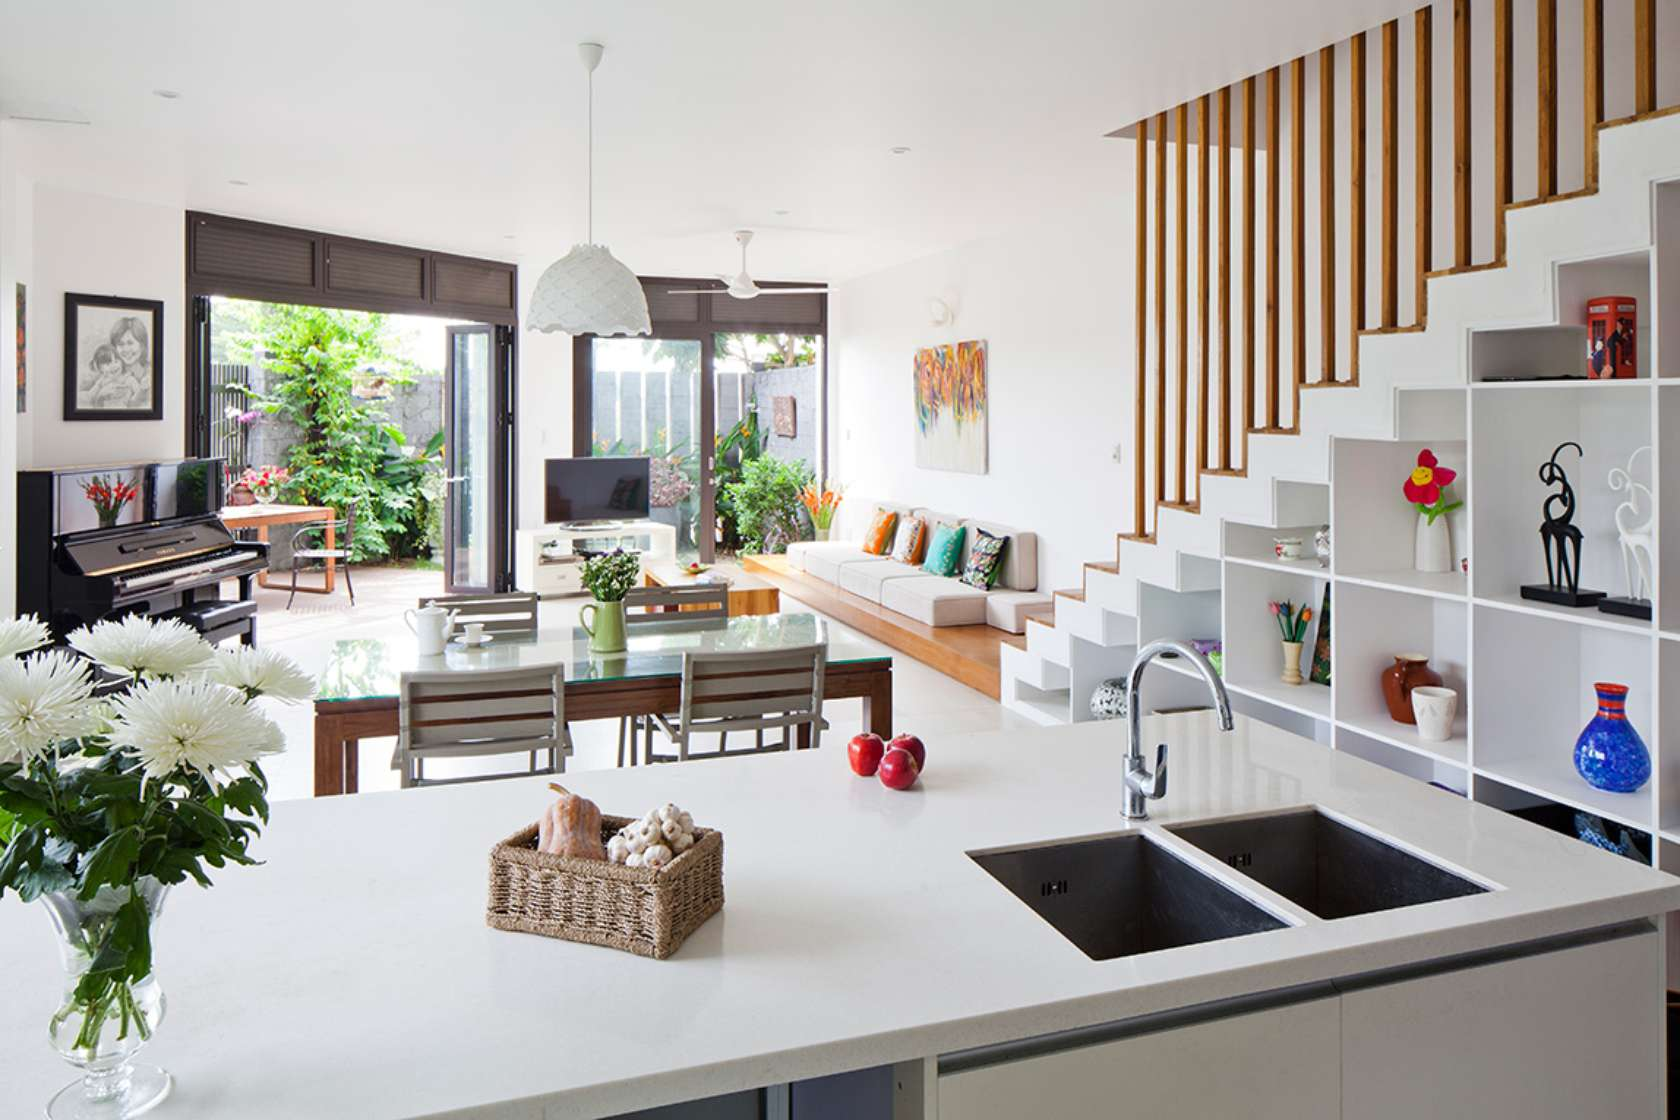 Newspaper of the West praised the words of 3-storey townhouse with beautiful garden in Saigon - Beautiful House No. (10)